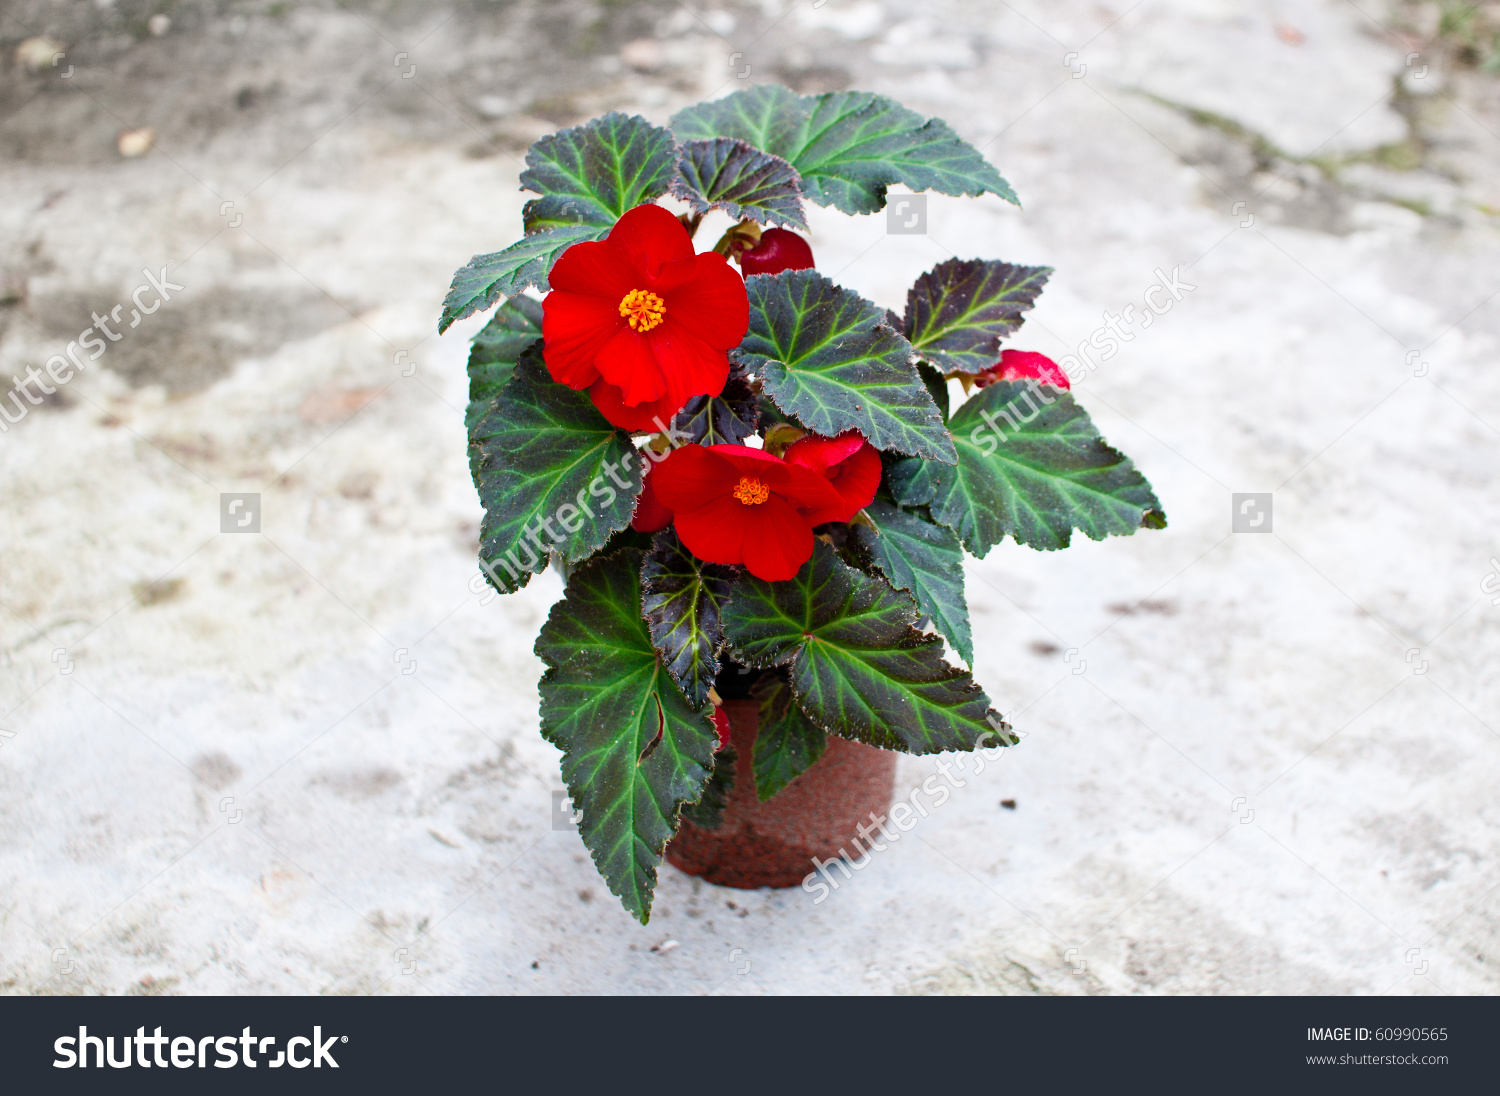 Delicate Red Begonia (Begoniaceae) Flower In A Planting Pot Stock.